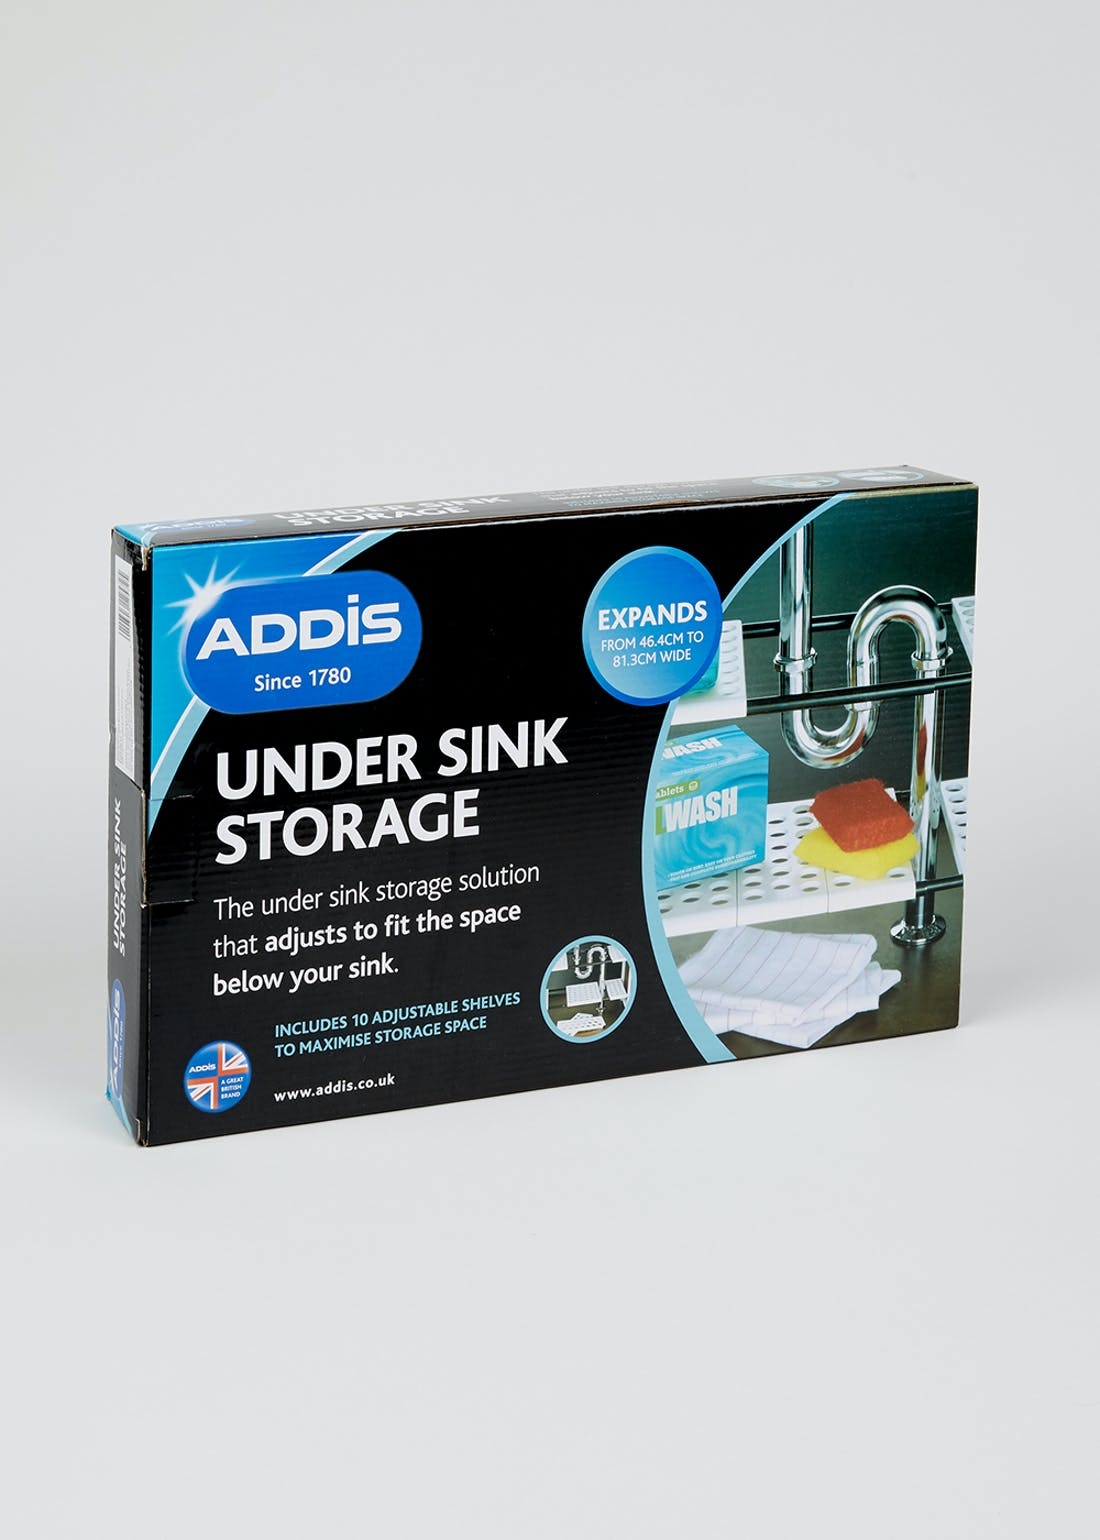 Addis Expandable Under Sink Storage